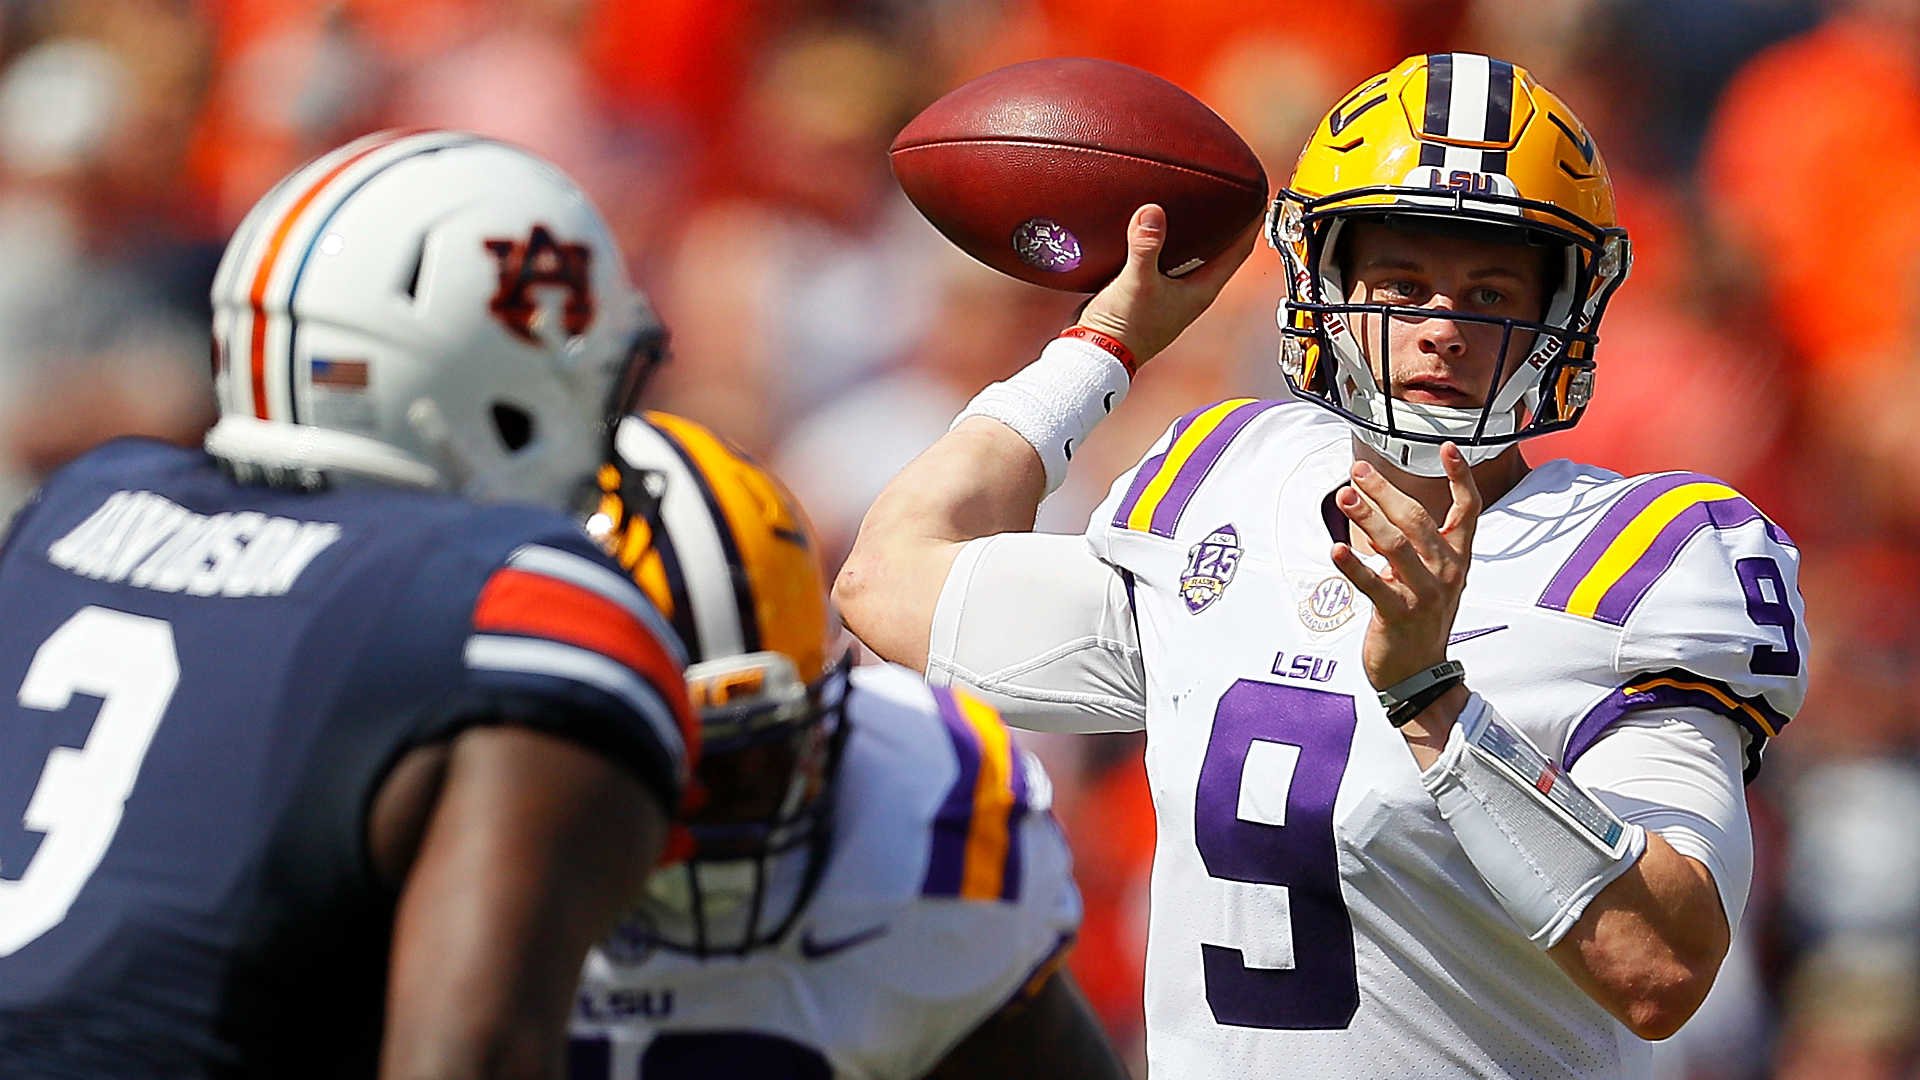 LSU Football jumps Alabama for the top spot in the AP-Top 25 Poll